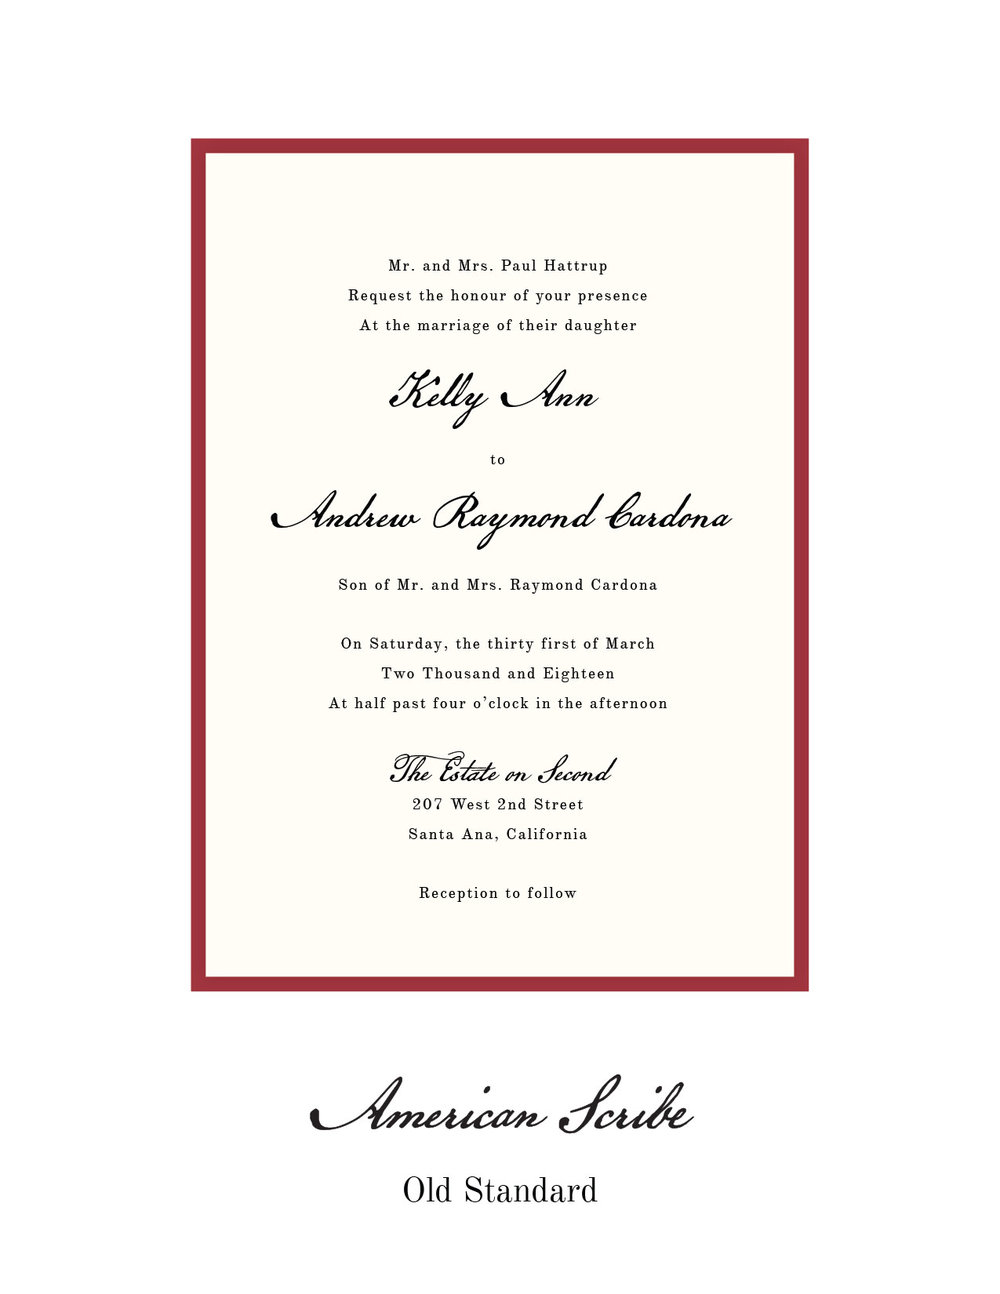 Wedding Fonts_American Scribe.jpg